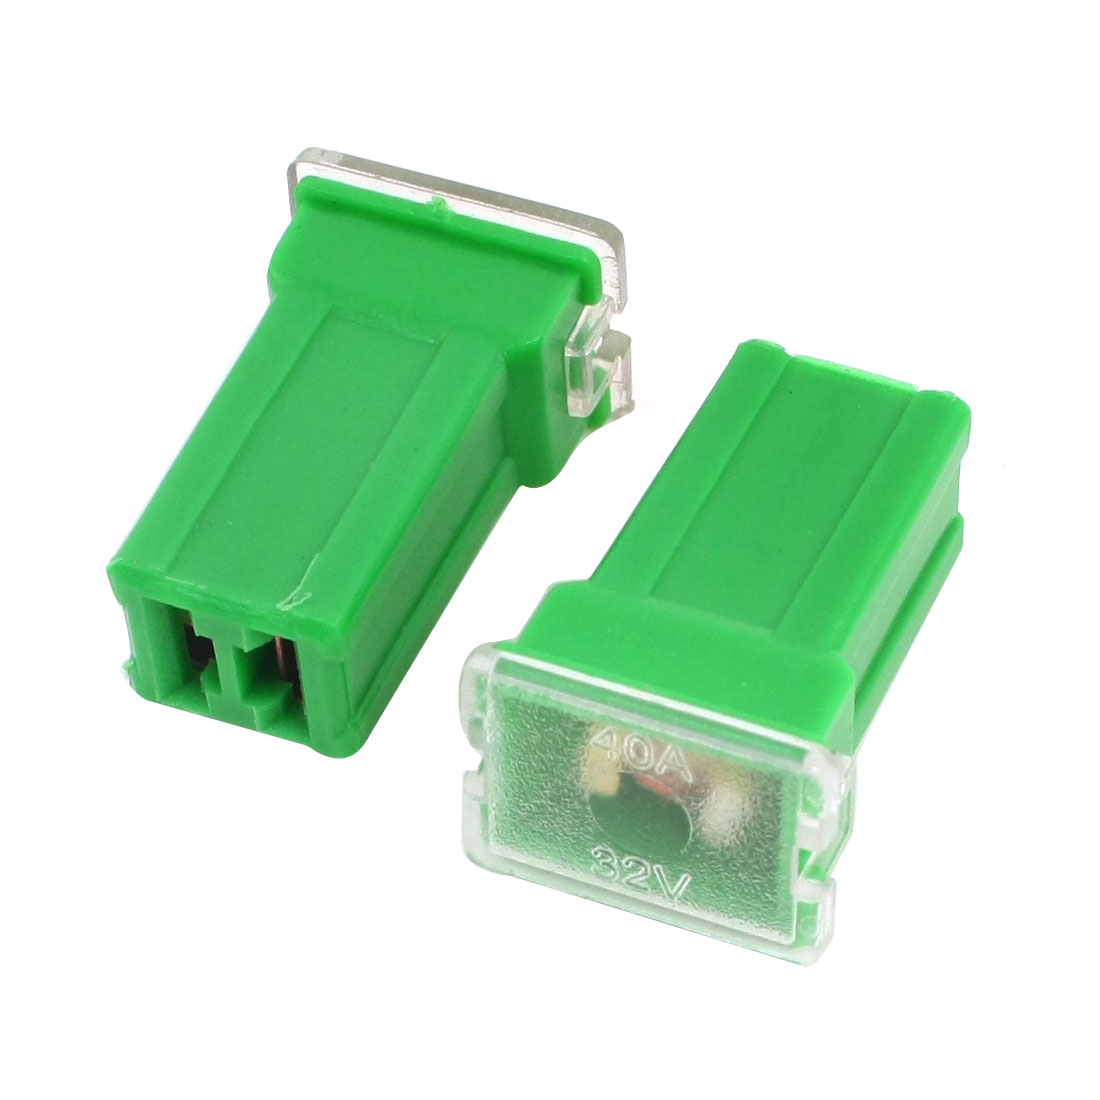 2Pcs 2 Terminals Car Vehicle Automotive Female Type Cartridge PAL Fuse Green DC 32V 40A